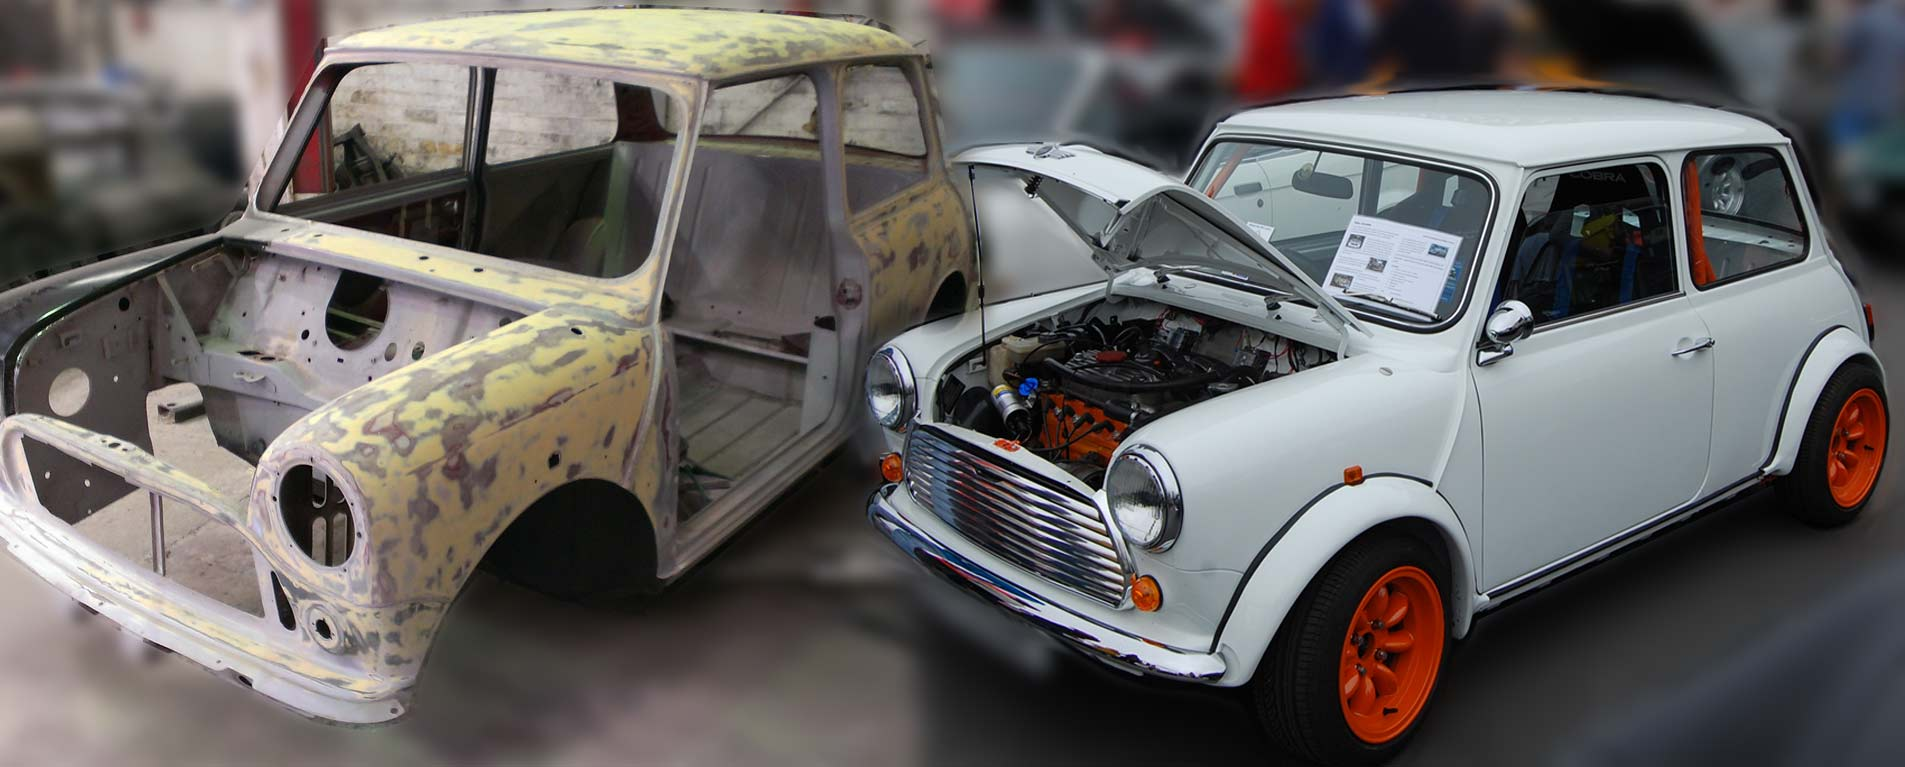 Mini car specialists